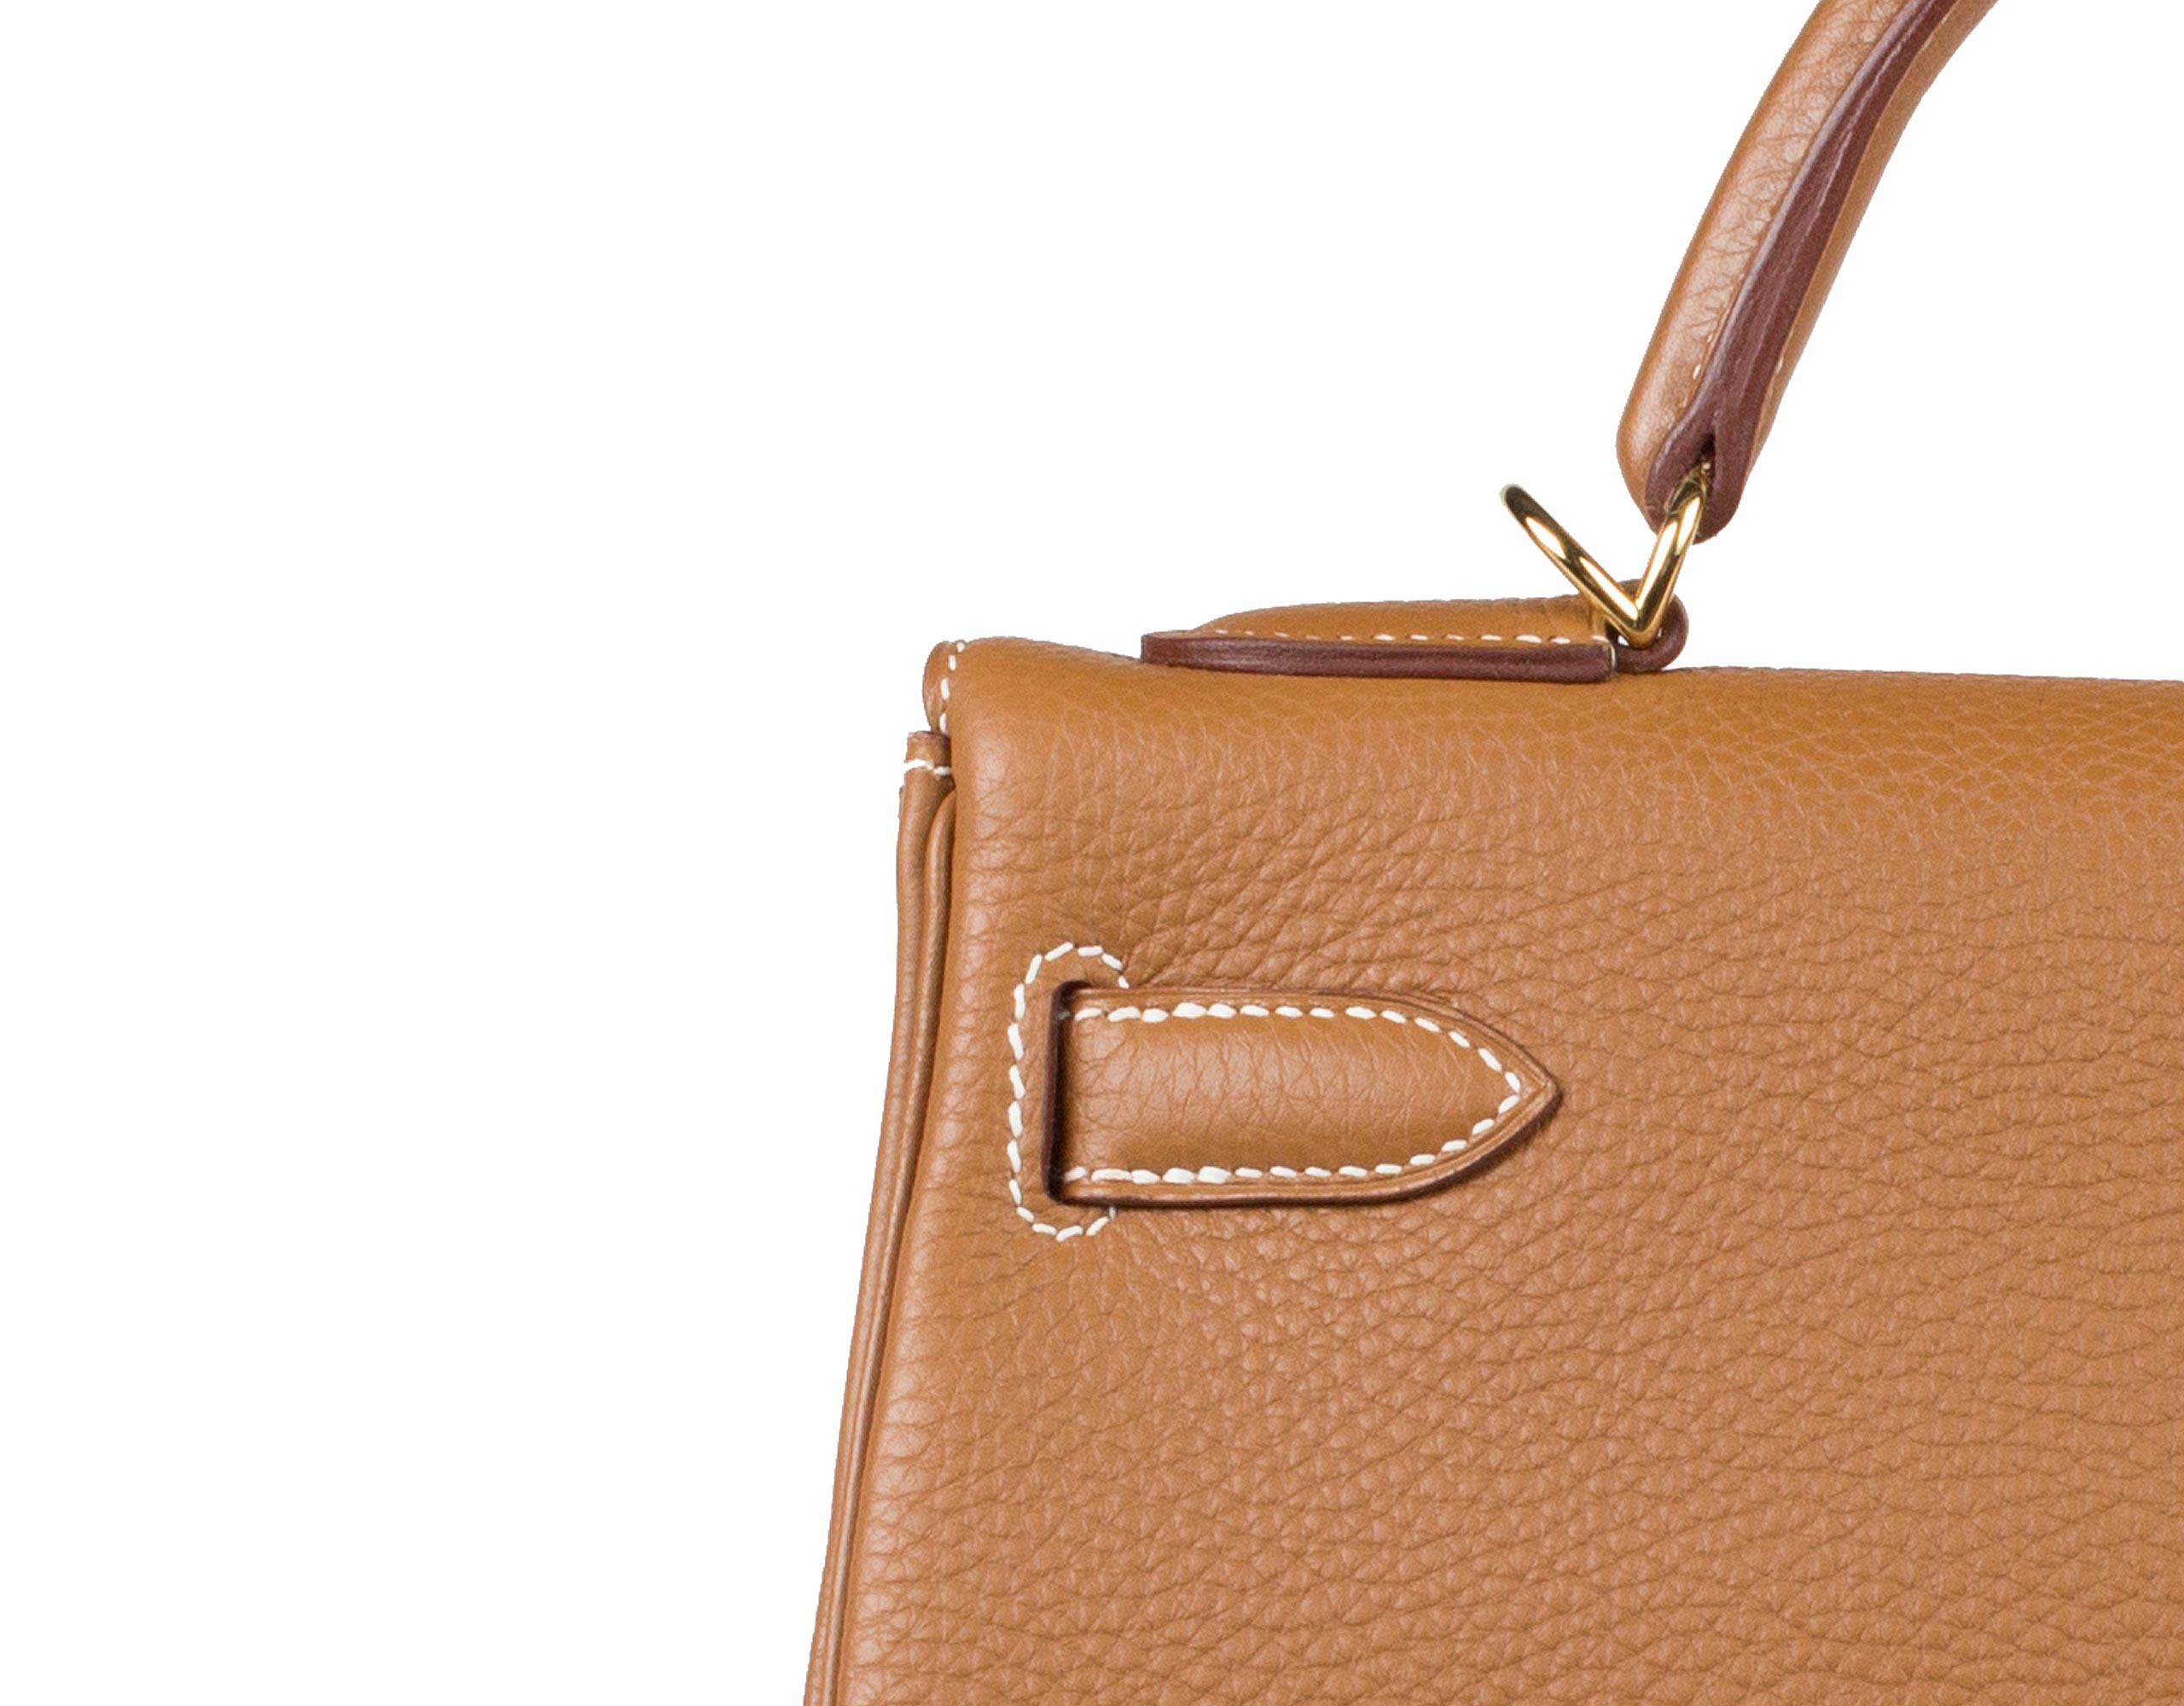 Hermes Bag Kelly Gold Togo 32cm K74 Stitching